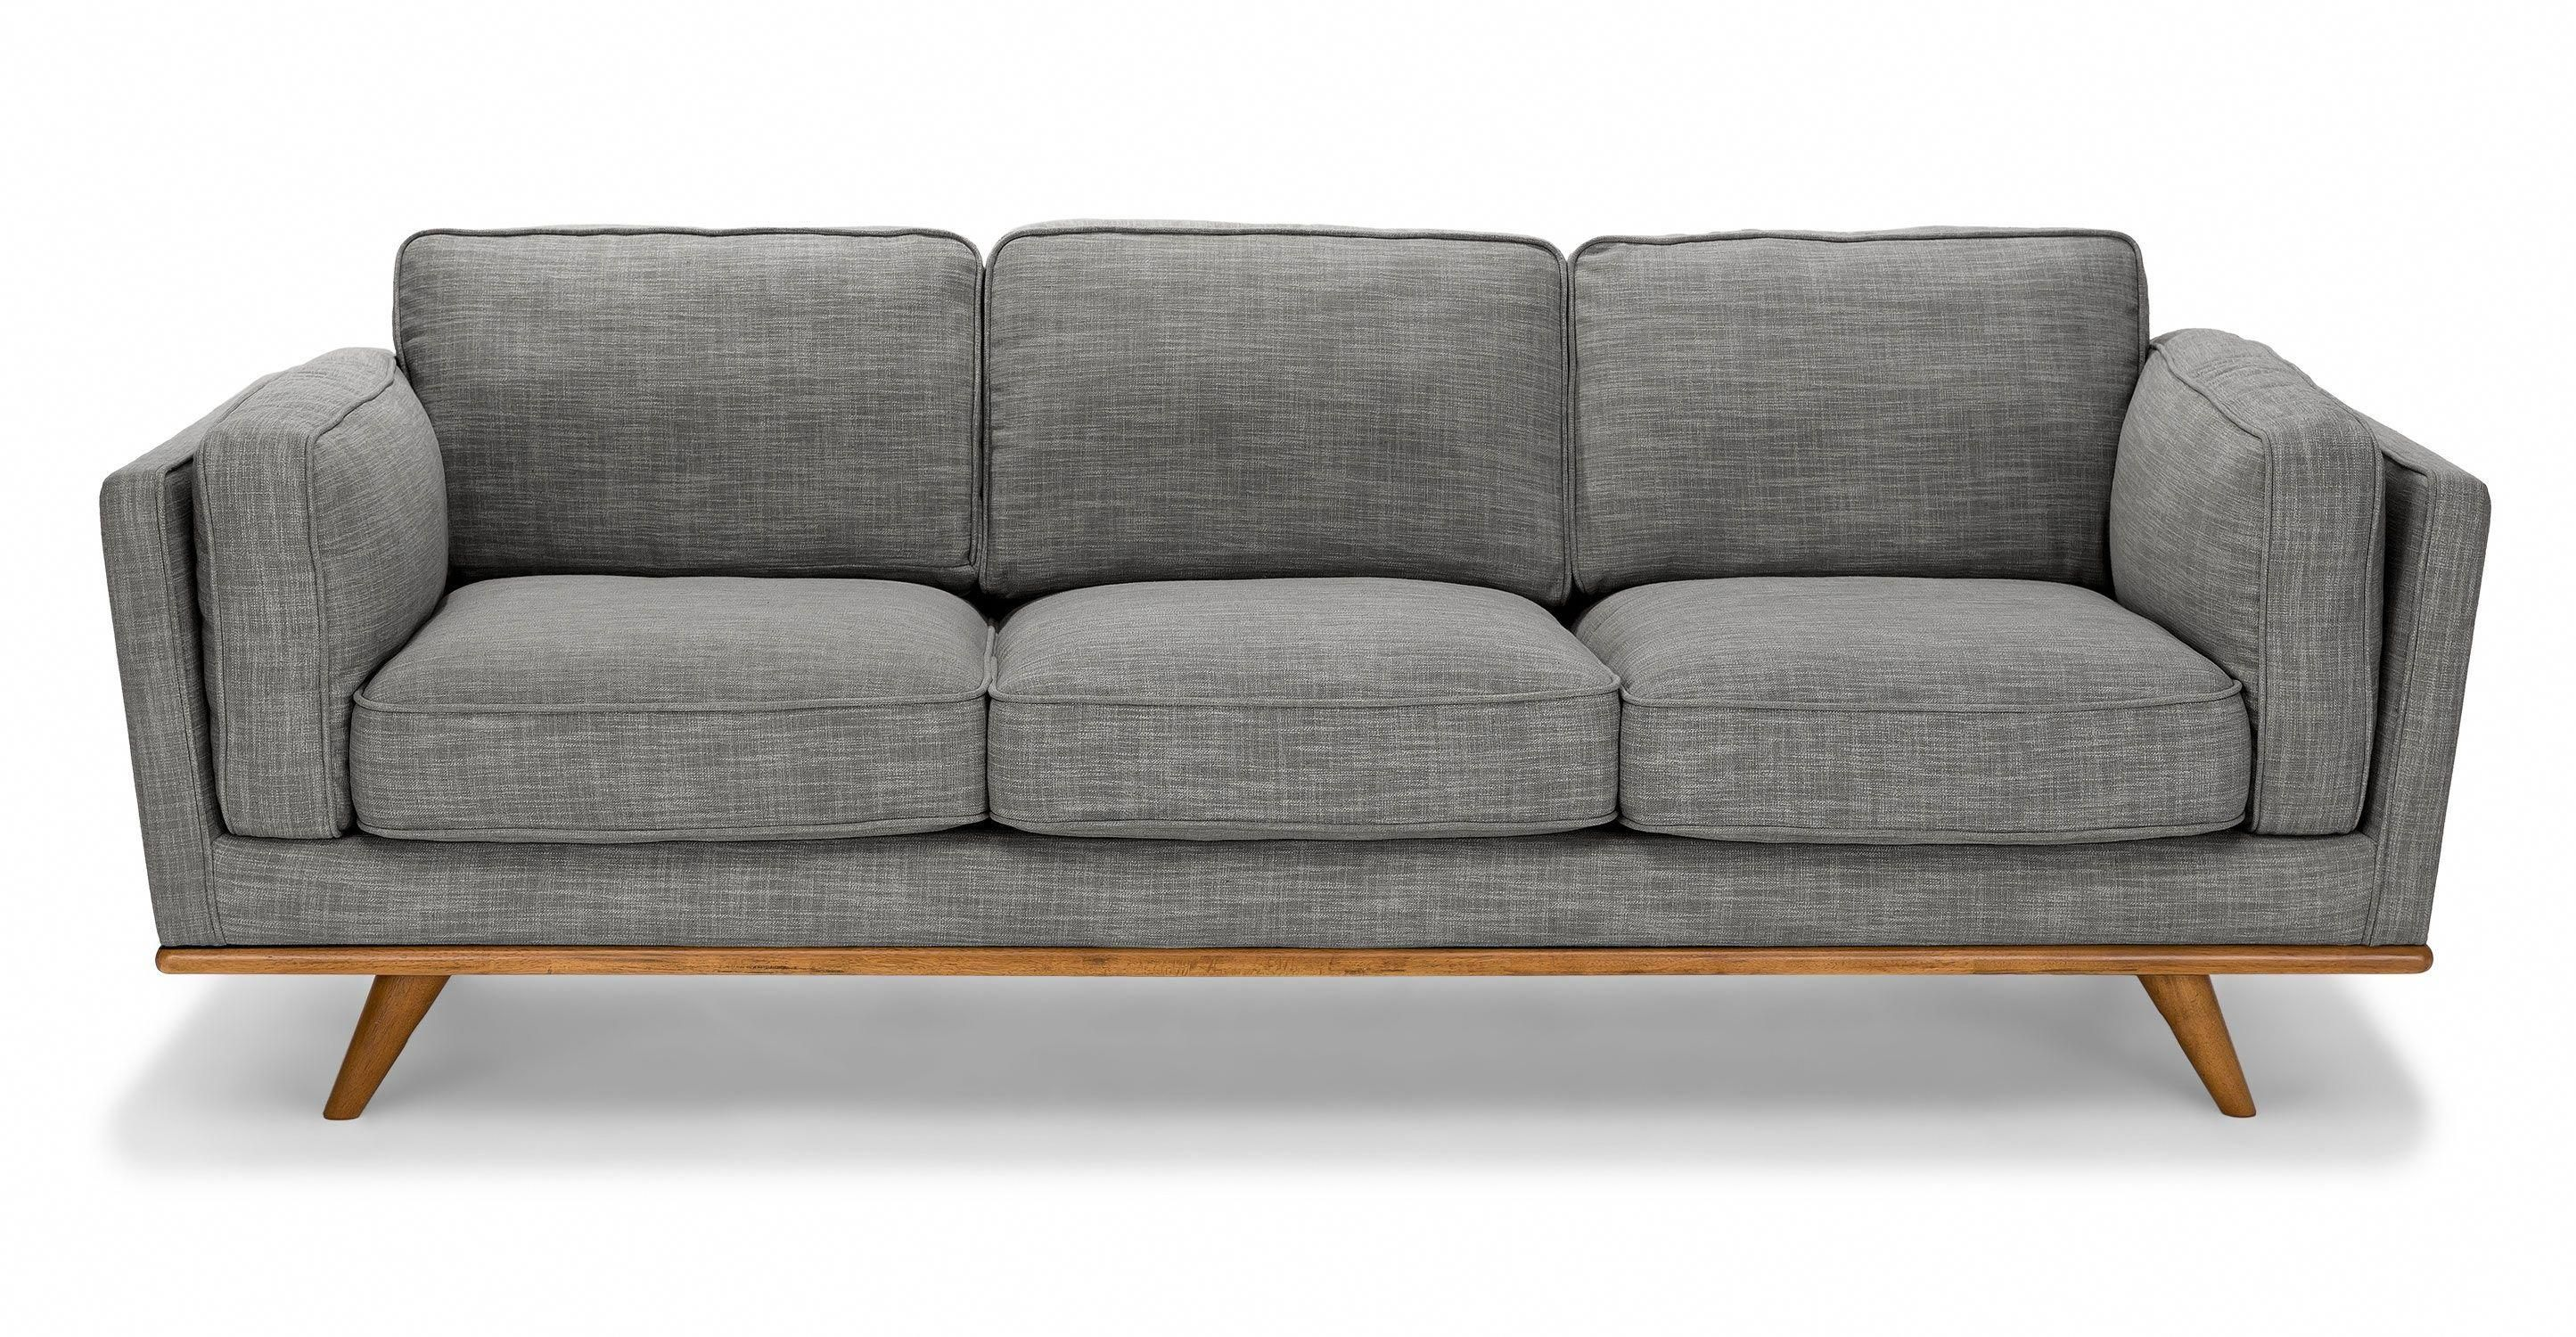 Timber Pebble Gray Sofa Homefurniture